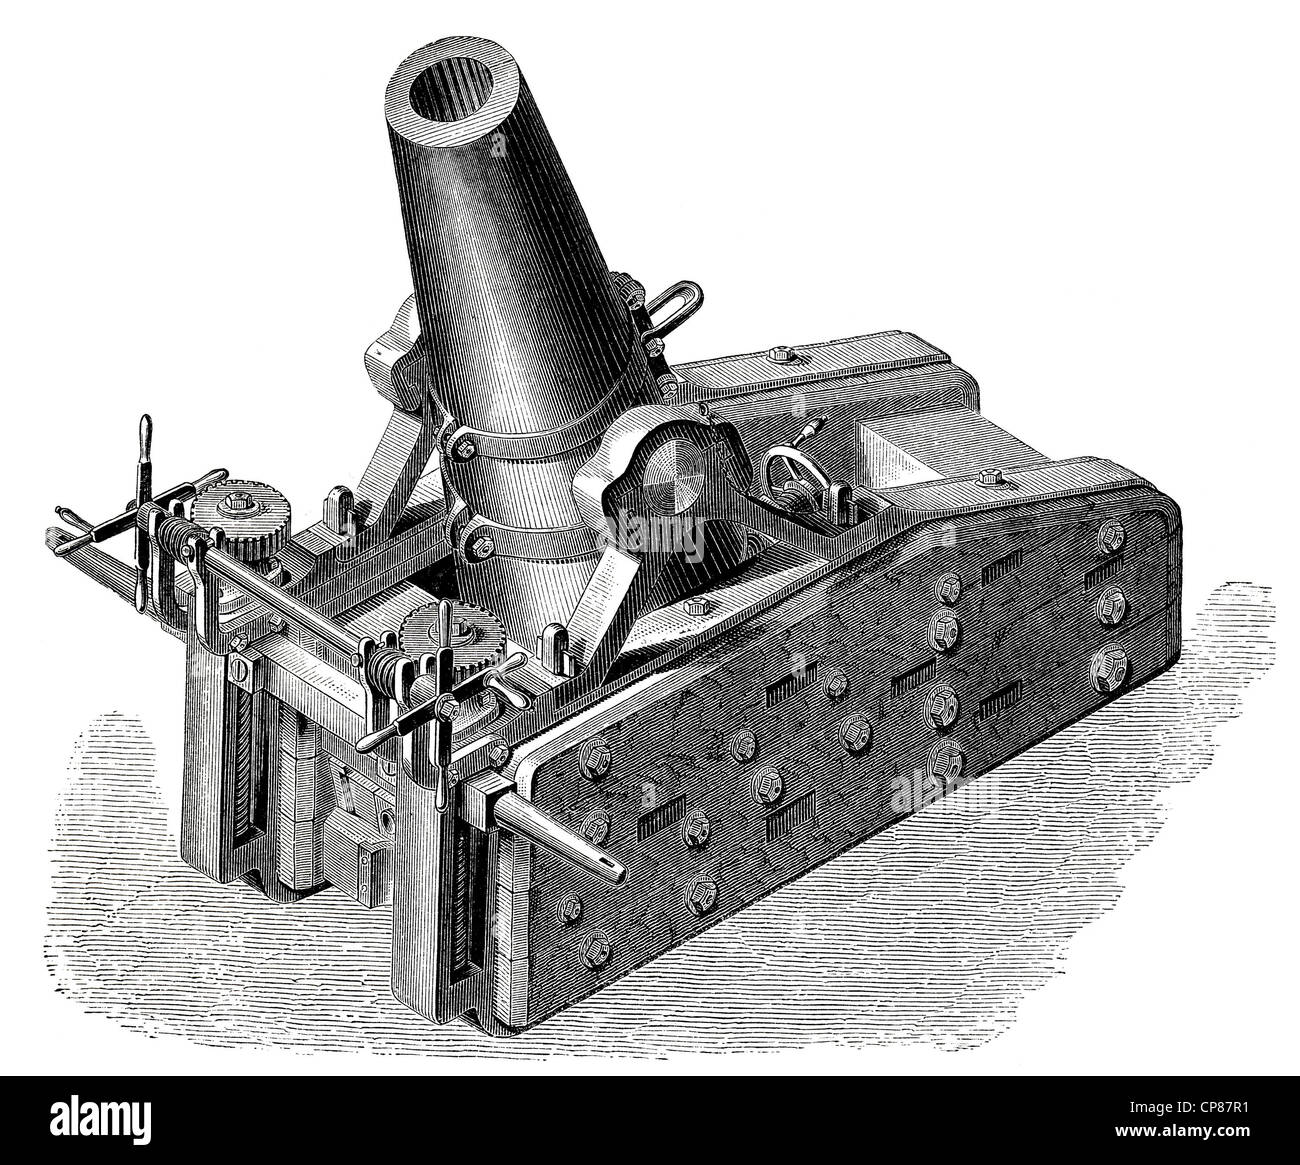 mortar of the German siege and fortress artillery in a mobile carriage, 19th Century, Geschütze und Kanonen, - Stock Image